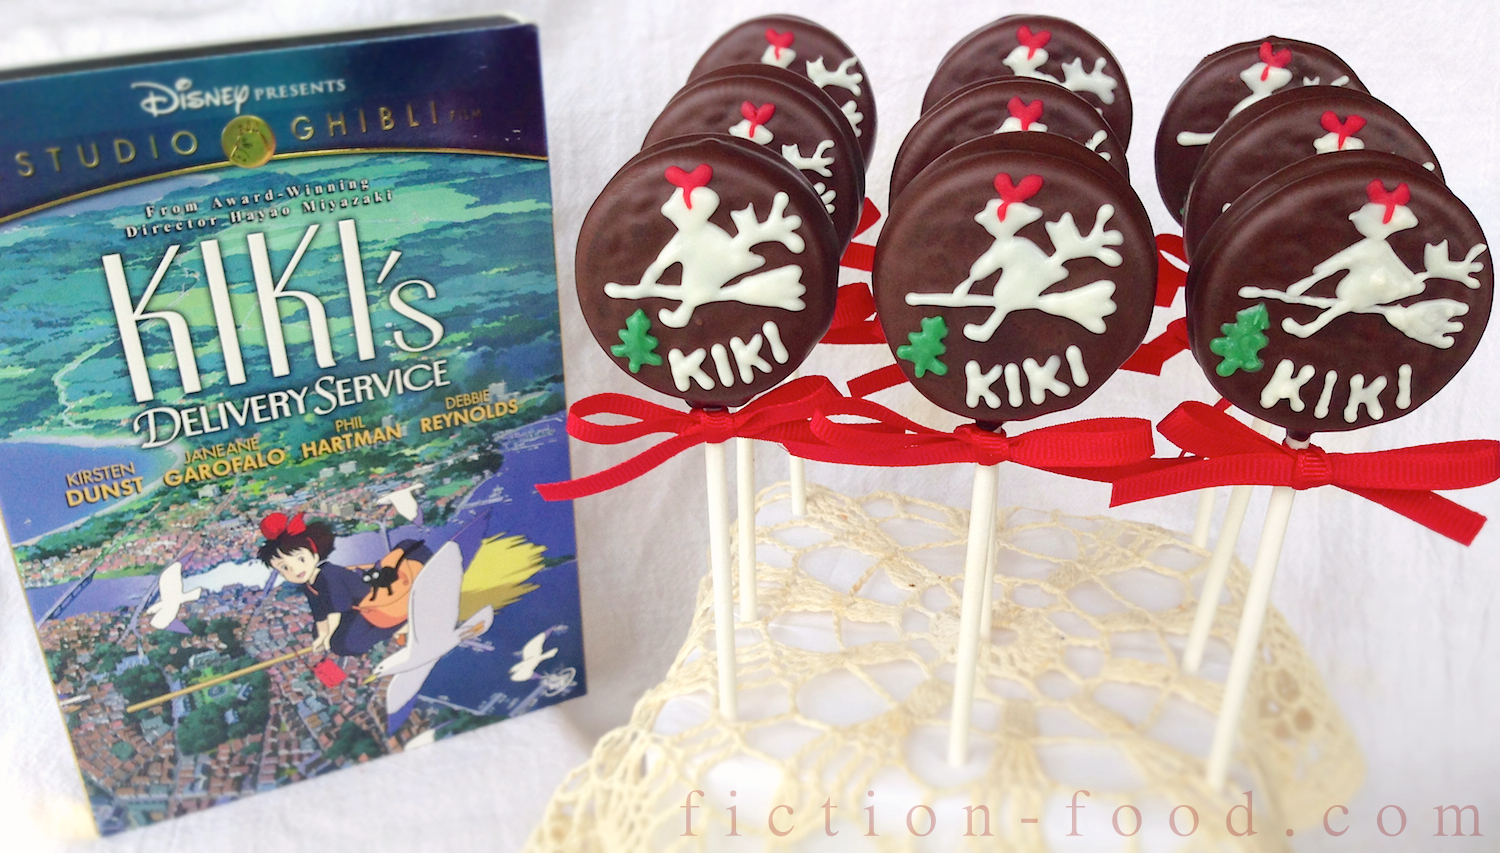 FictionFood Caf Kikis Cake Cookie Pops for Kikis Delivery